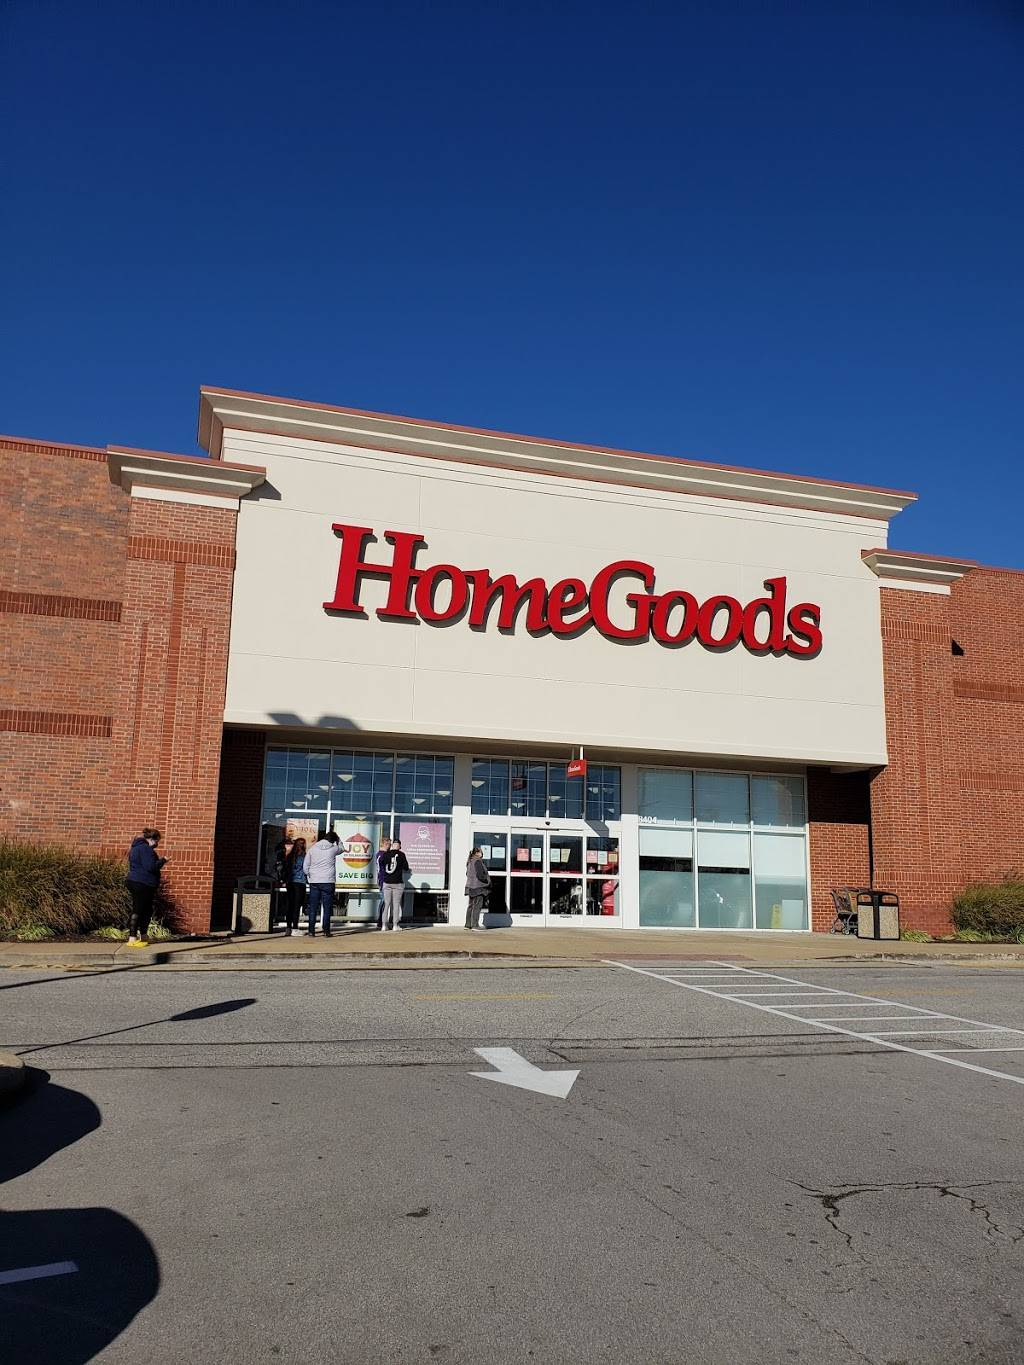 Homegoods 8404 Eager Rd Brentwood Mo 63144 Usa